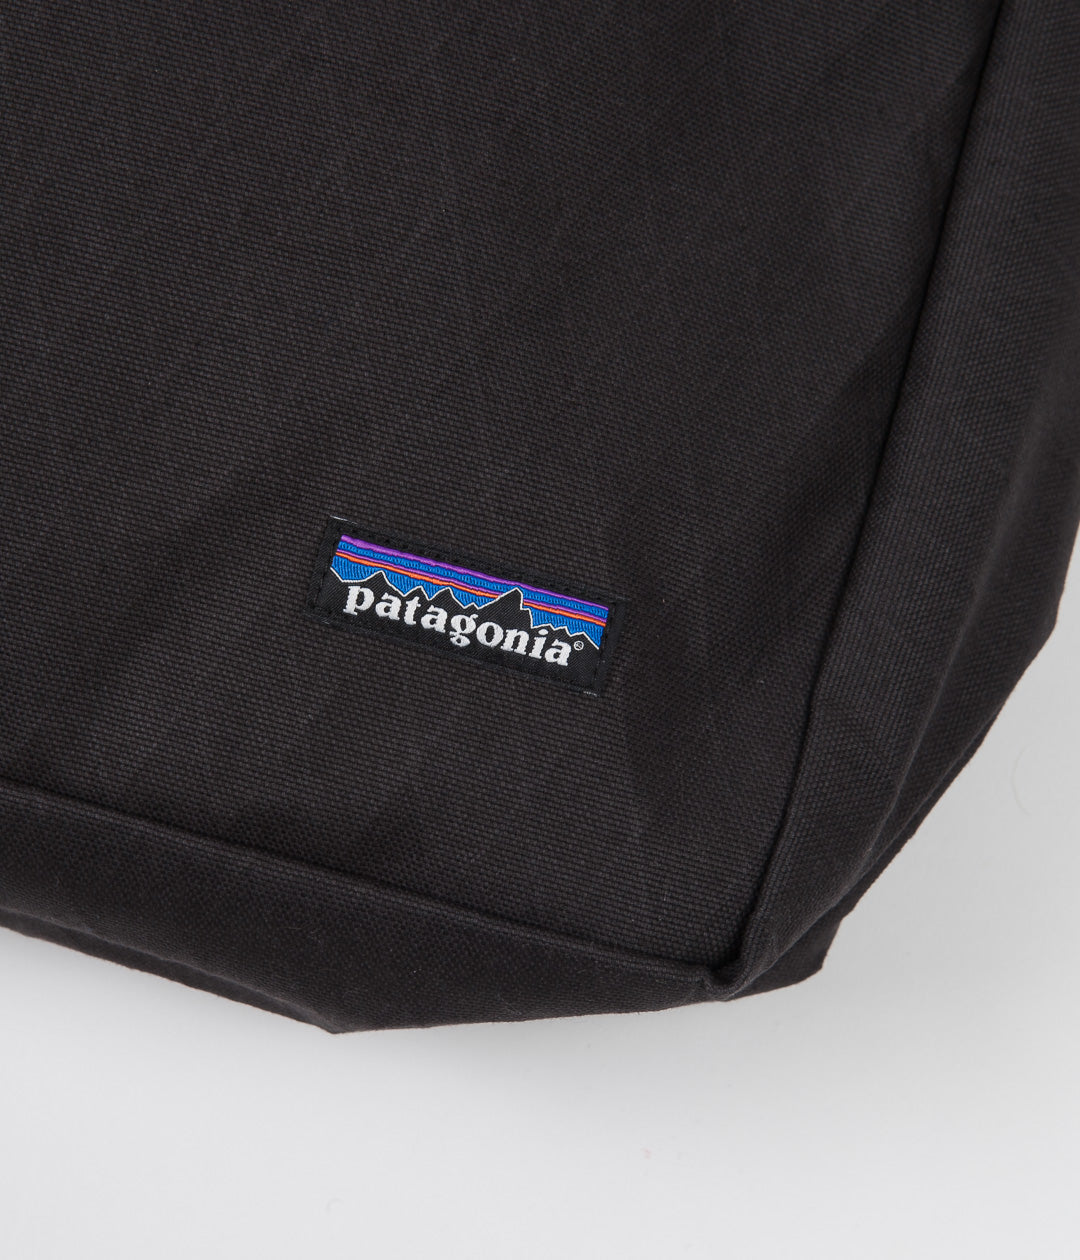 Patagonia Stand Up Pack - Ink Black